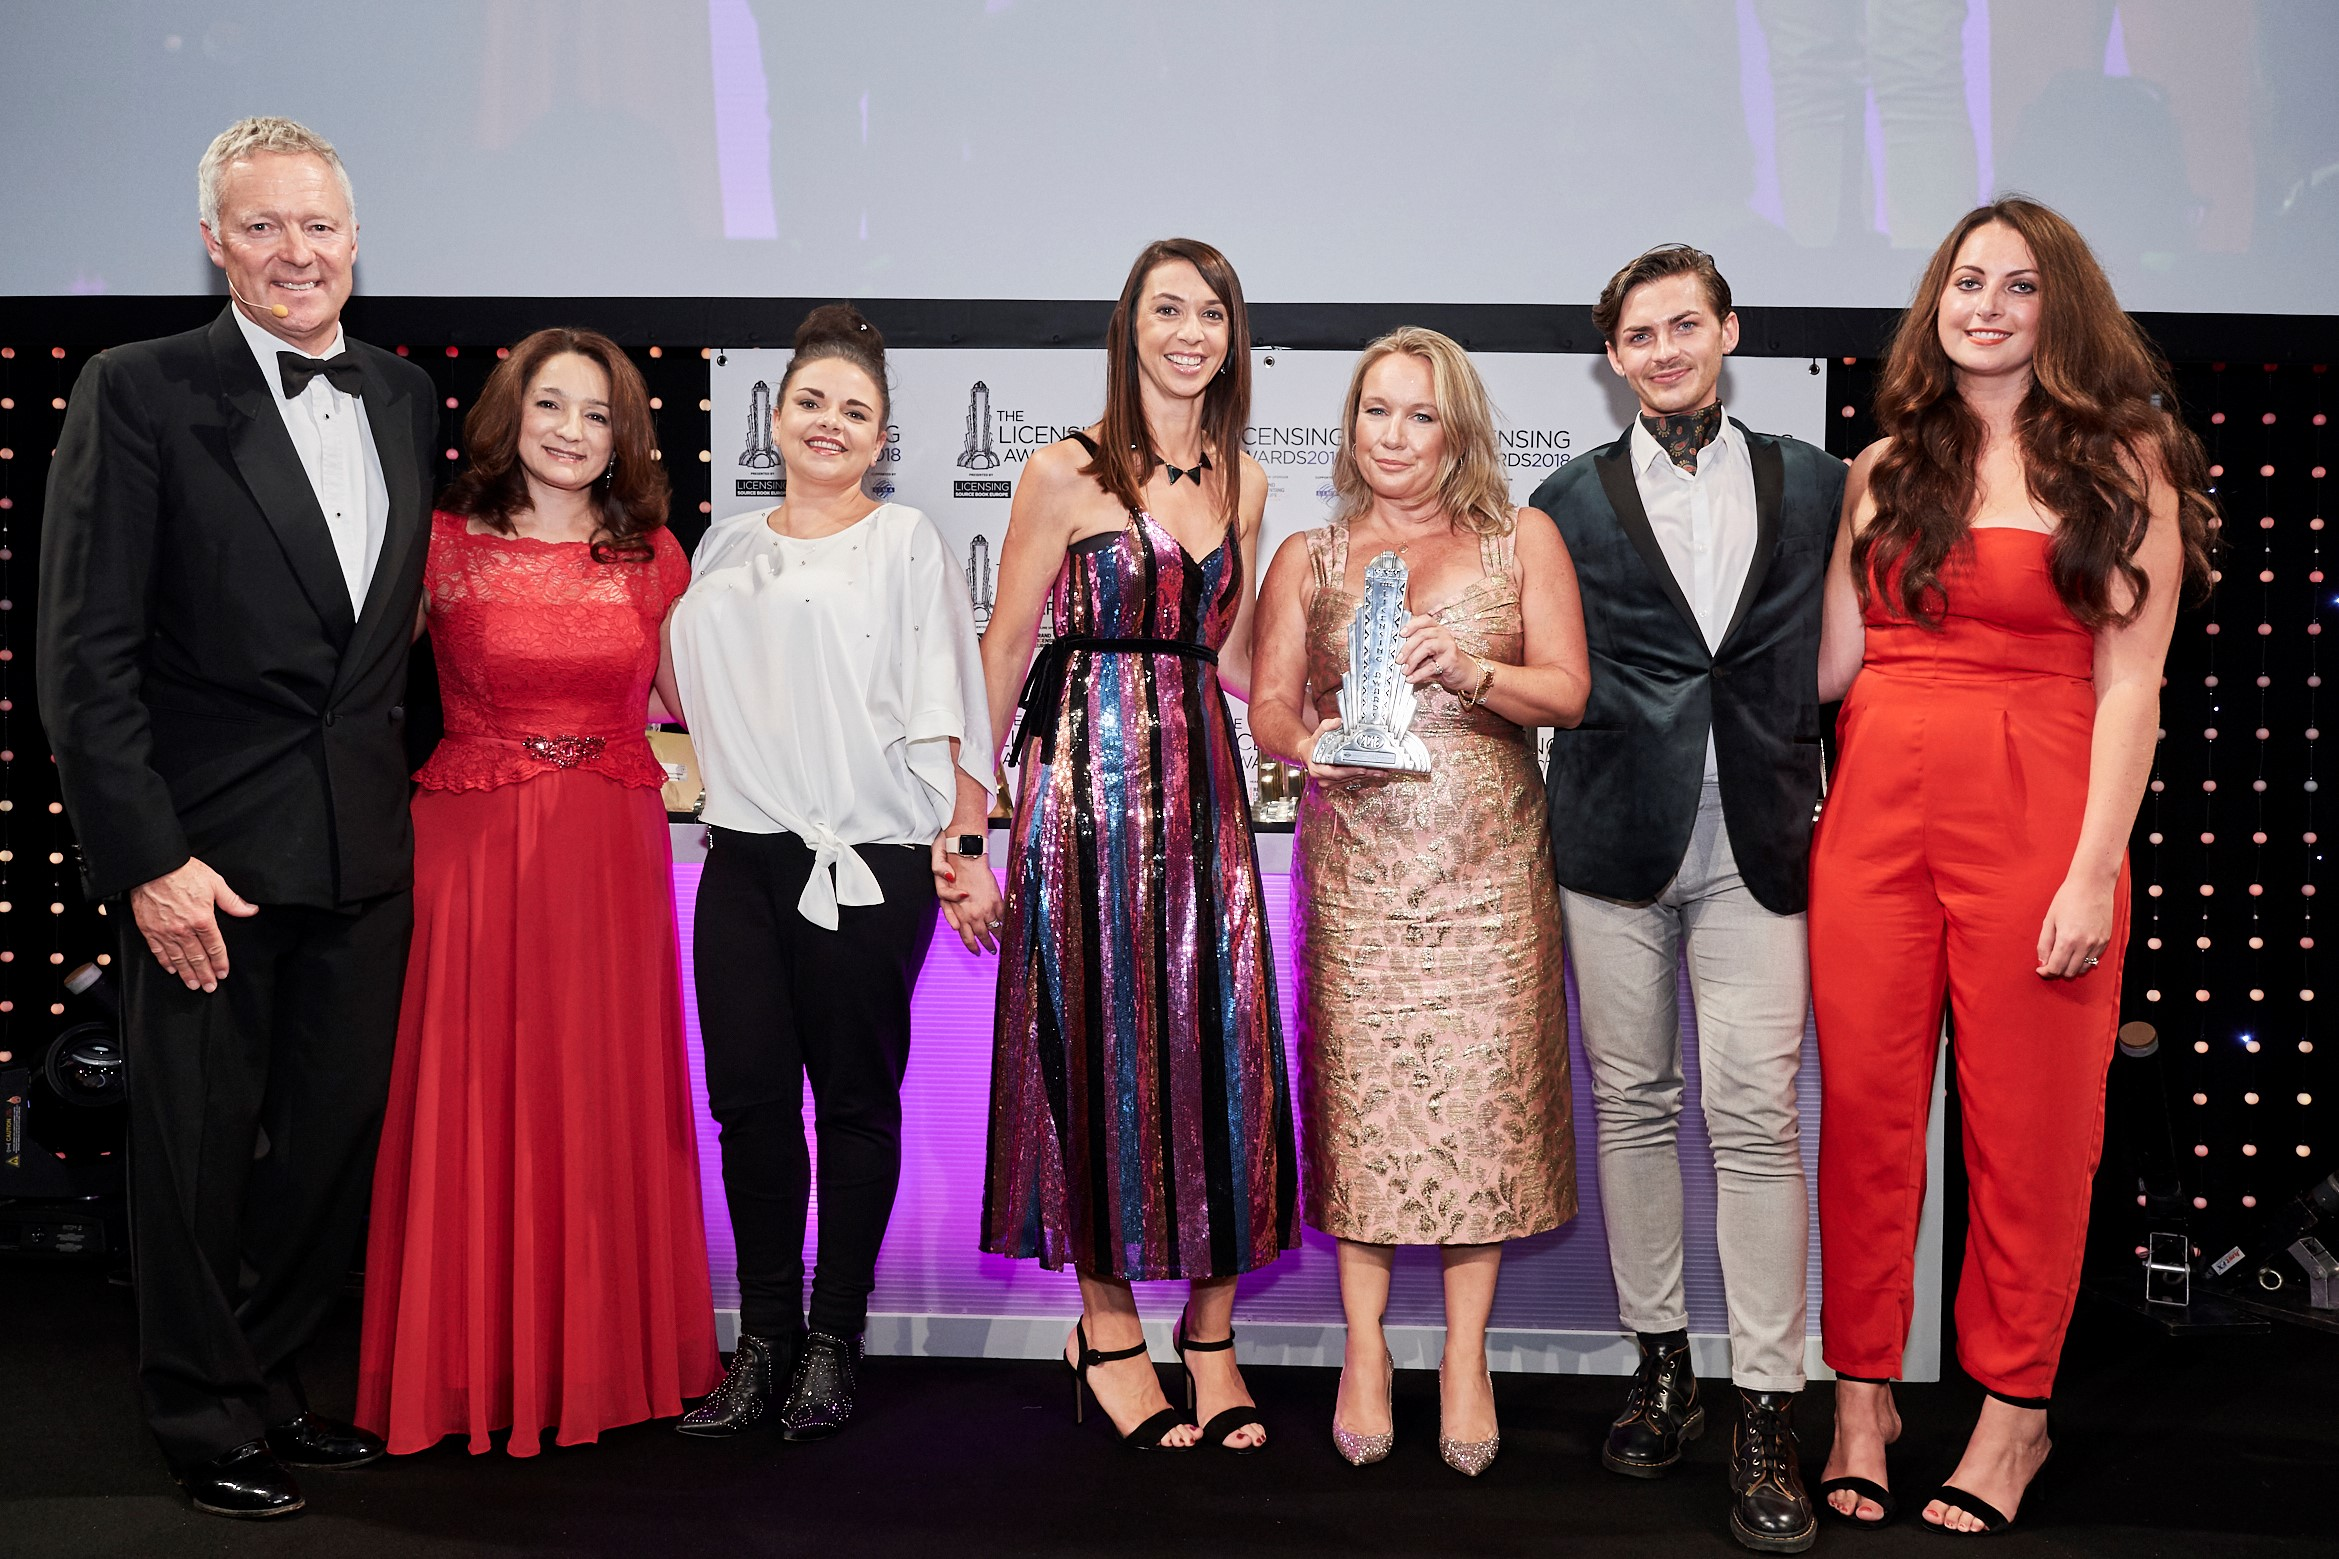 Smiffys Win Best Licensed Dress Up at The Licensing Awards 2018